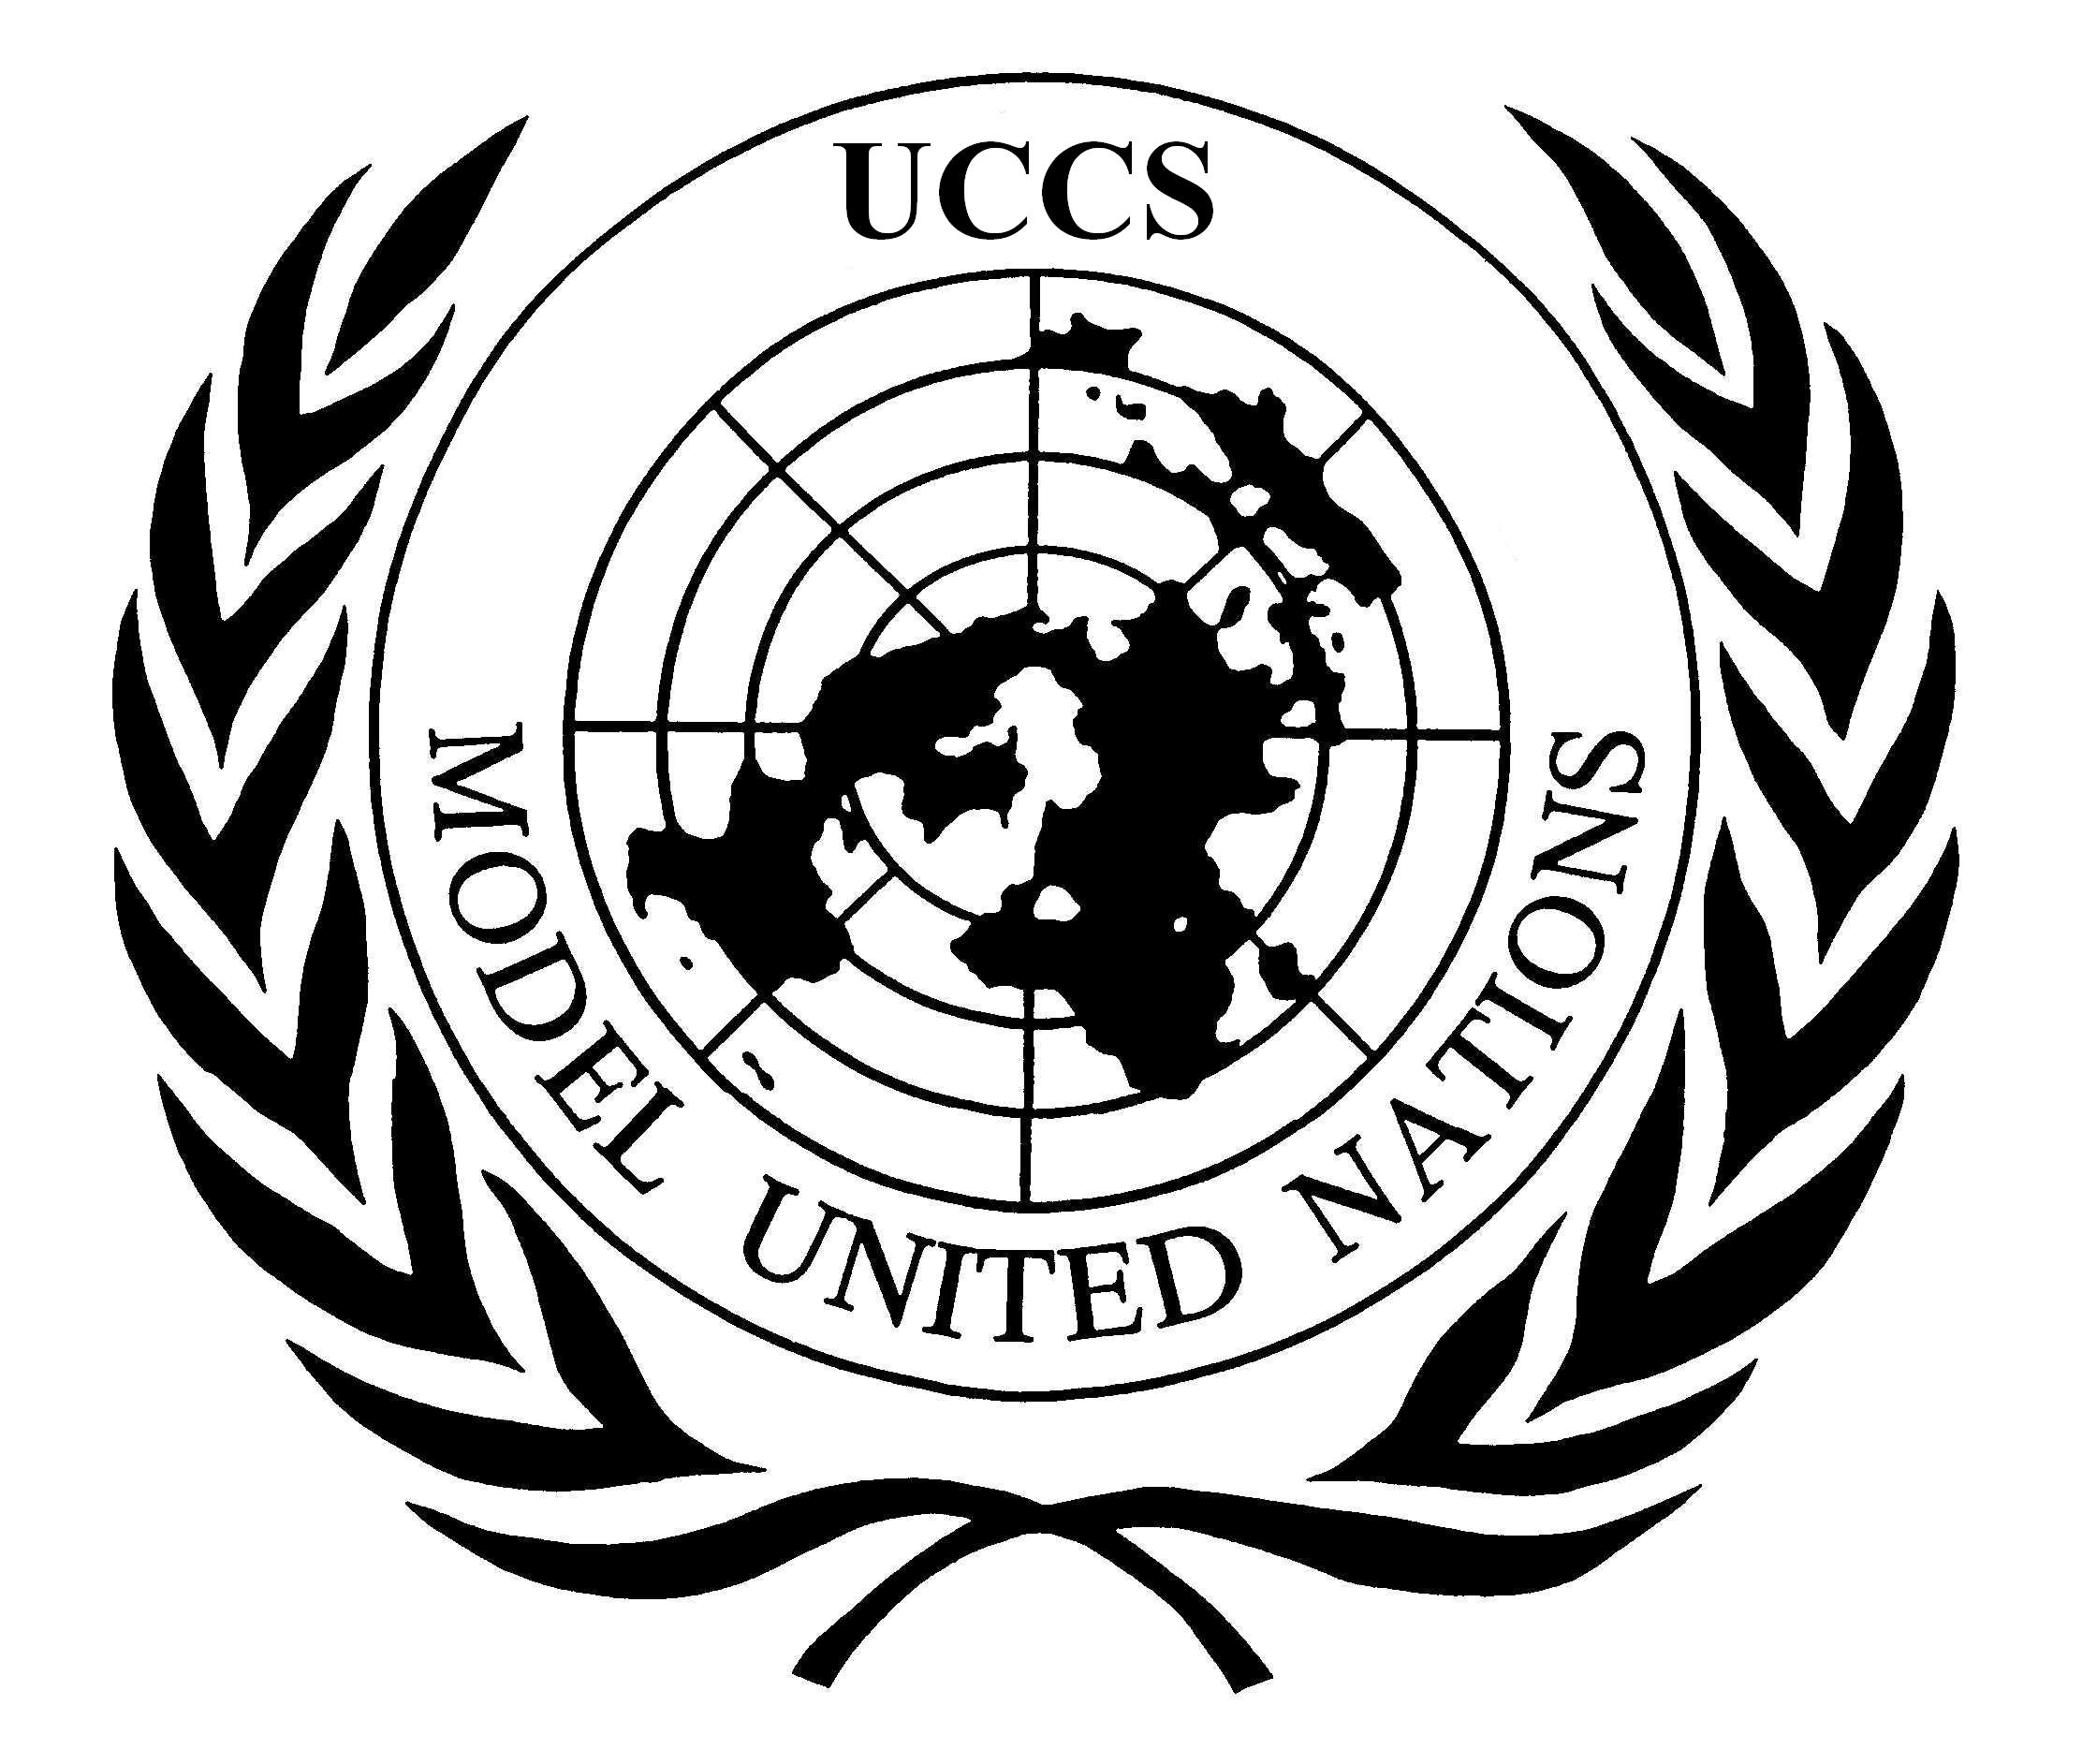 Odyssey High Attends Model United Nations